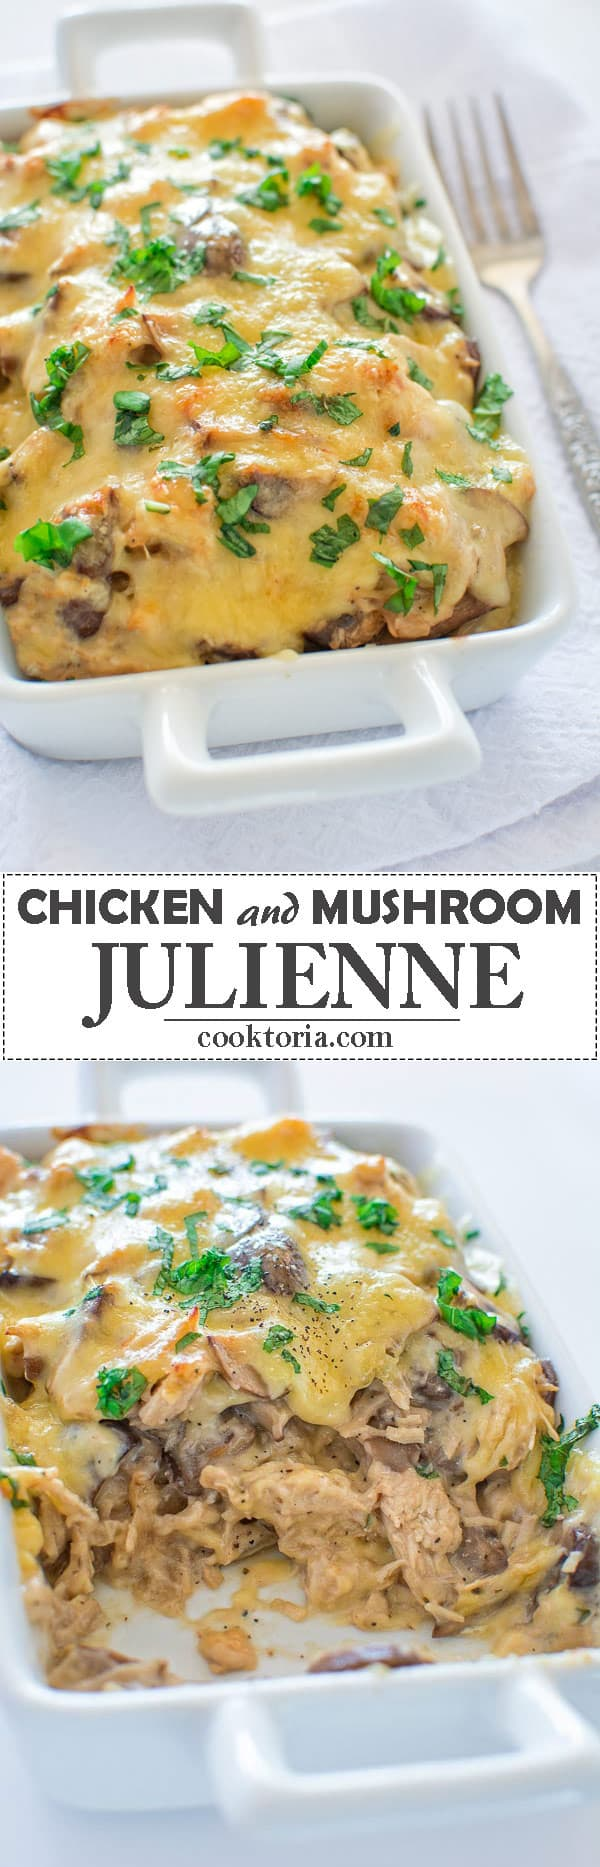 Succulent mushrooms and tender chicken cooked to perfection in creamy sauce and topped with melted cheese. This Chicken Mushroom Julienne is to die for!❤ COOKTORIA.COM